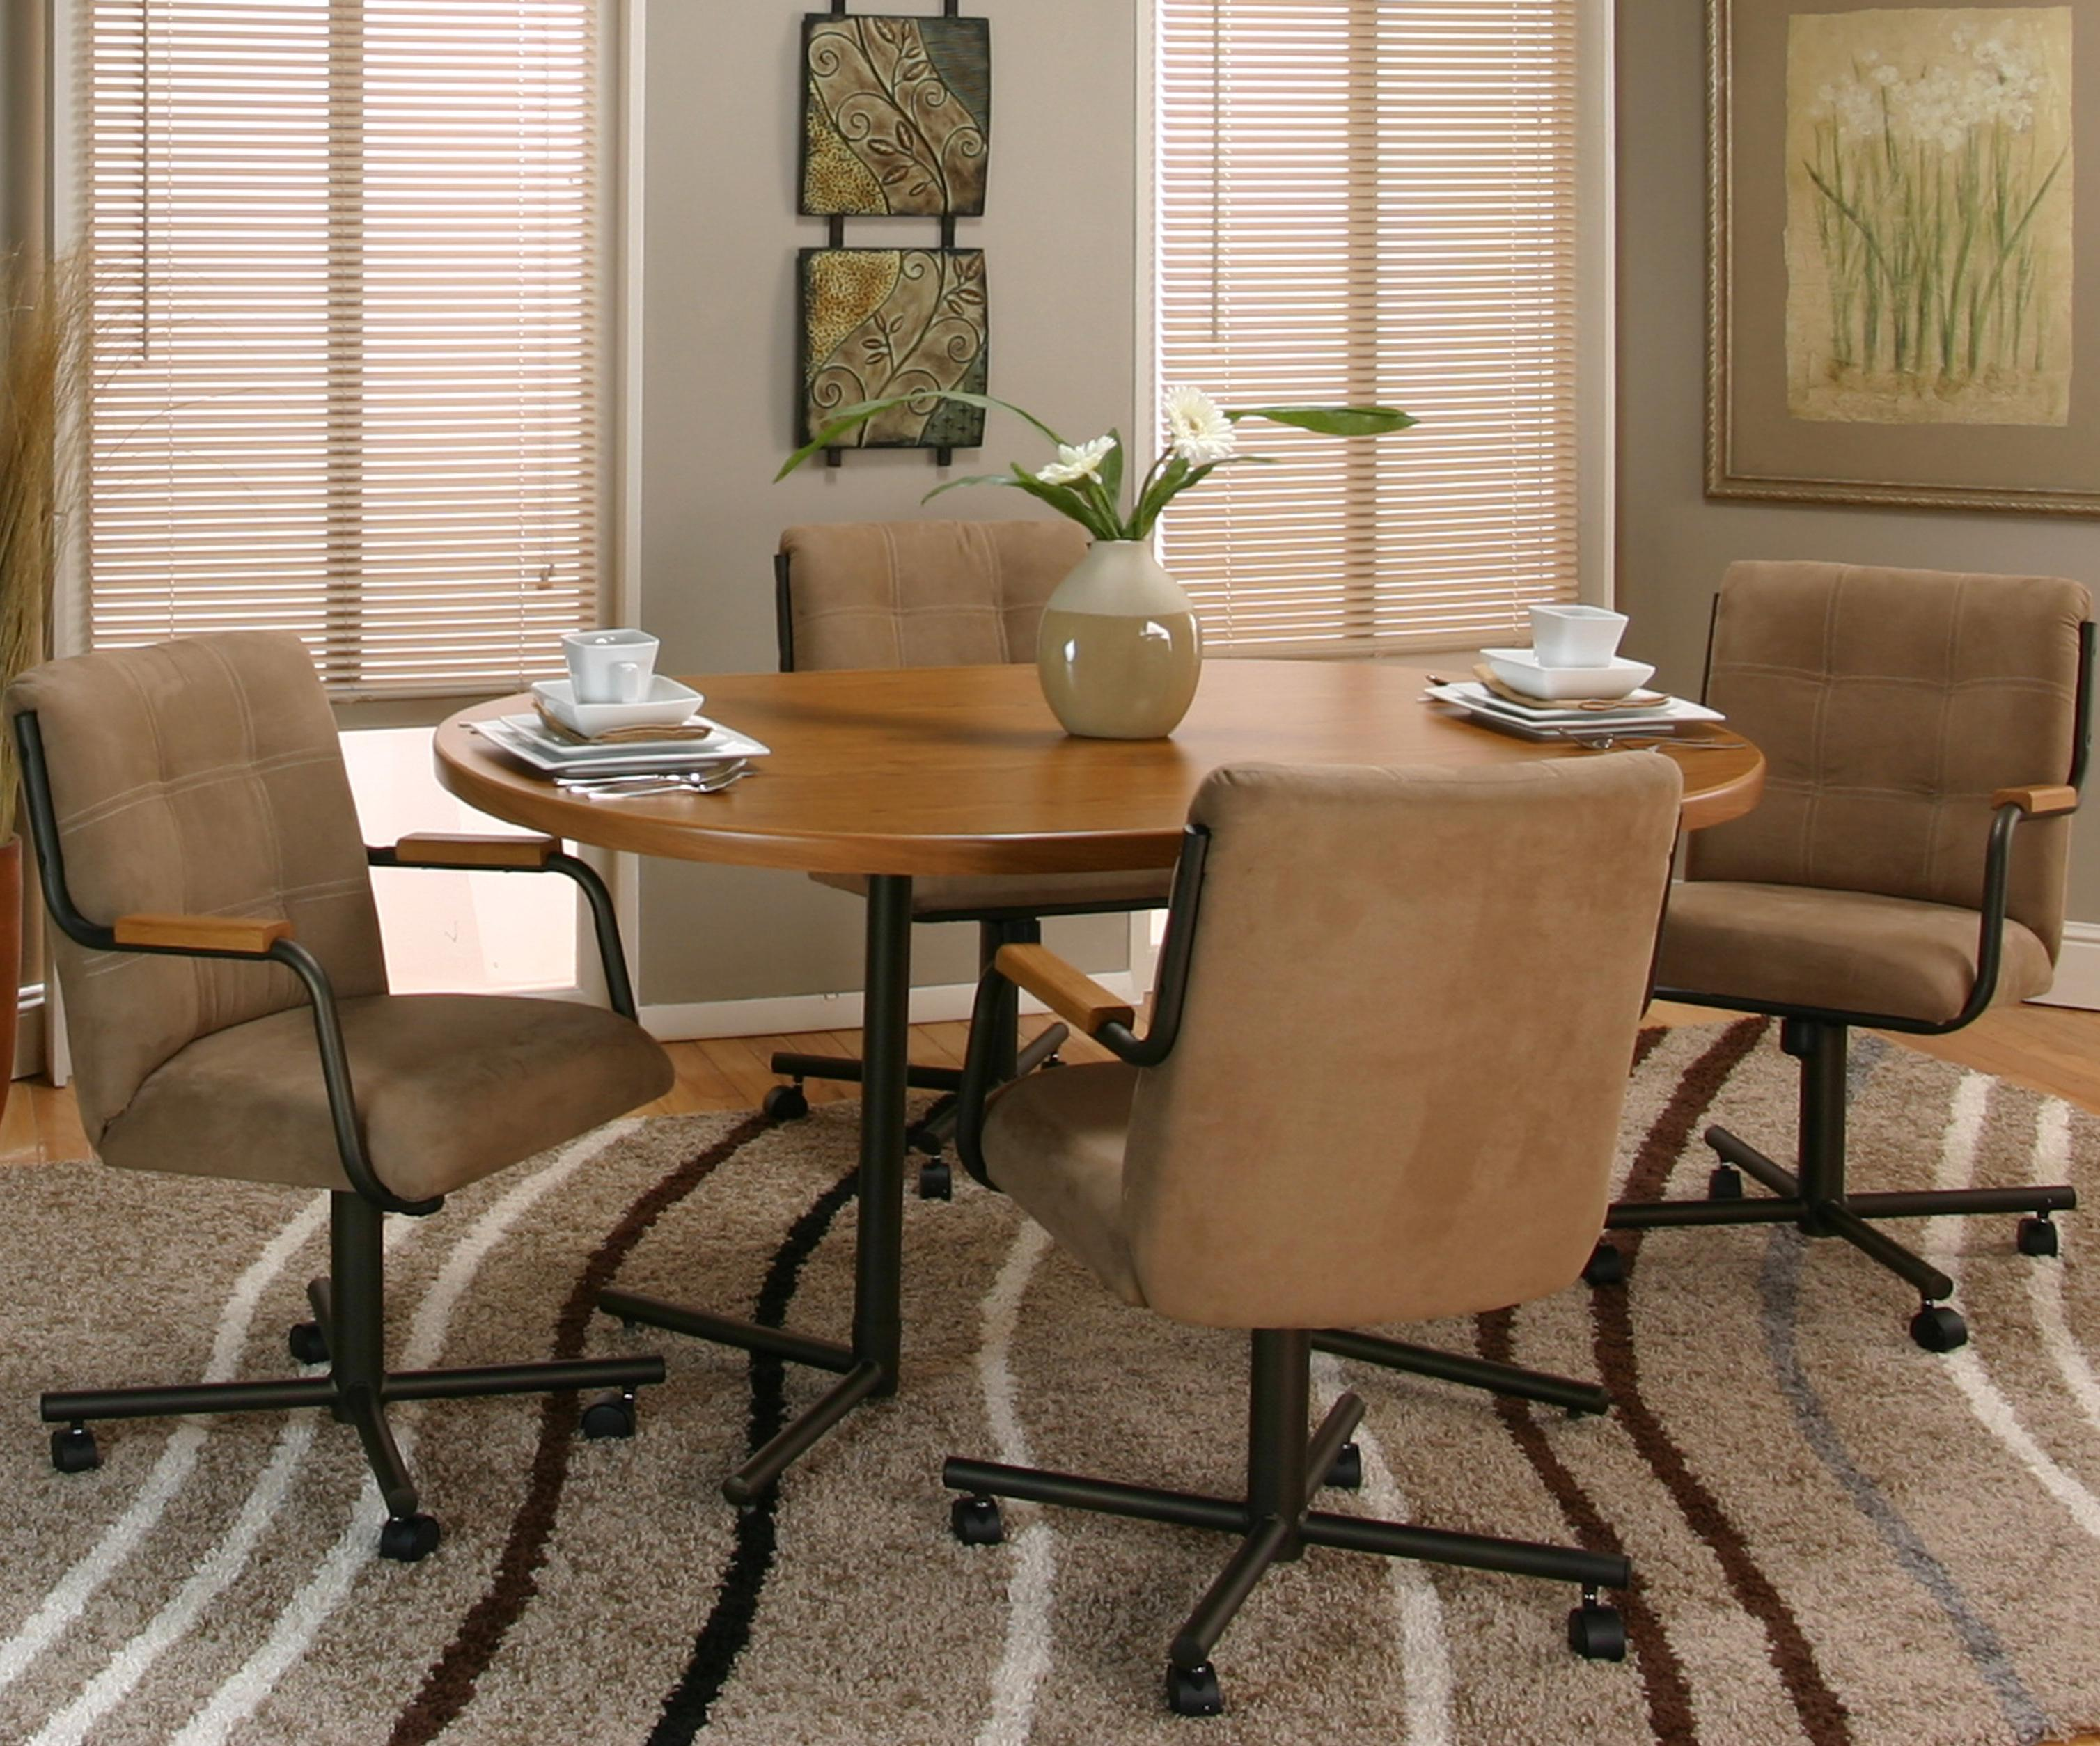 Cramco Motion - Dillon  Table and Chair Set by Cramco, Inc at VanDrie Home Furnishings